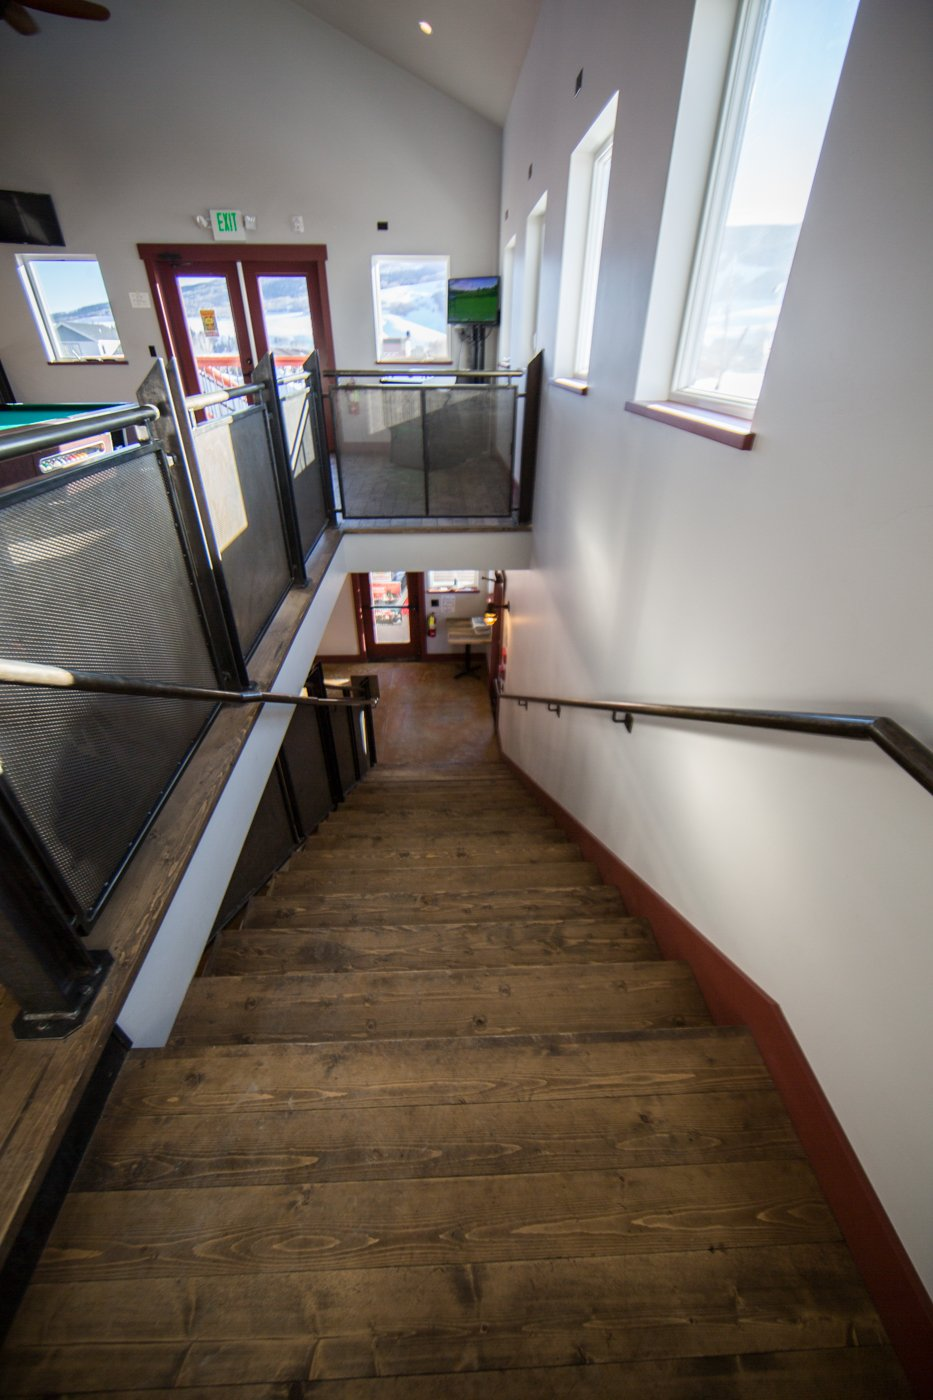 Tully's stairs from the loft